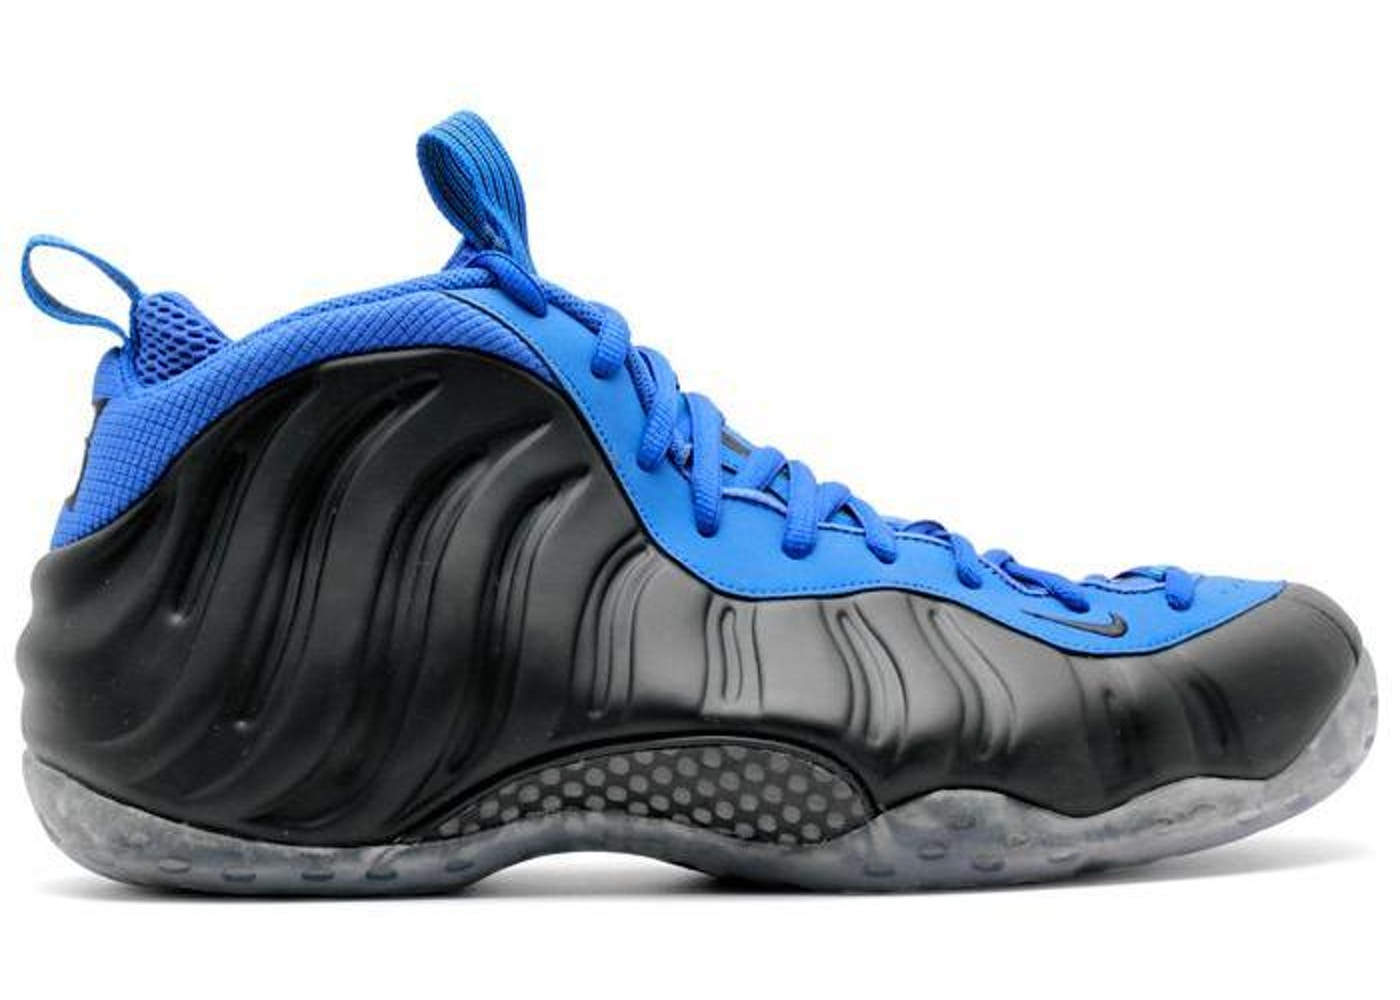 2c922297262 ... Air Foamposite One Sole Collector Penny Pack ...